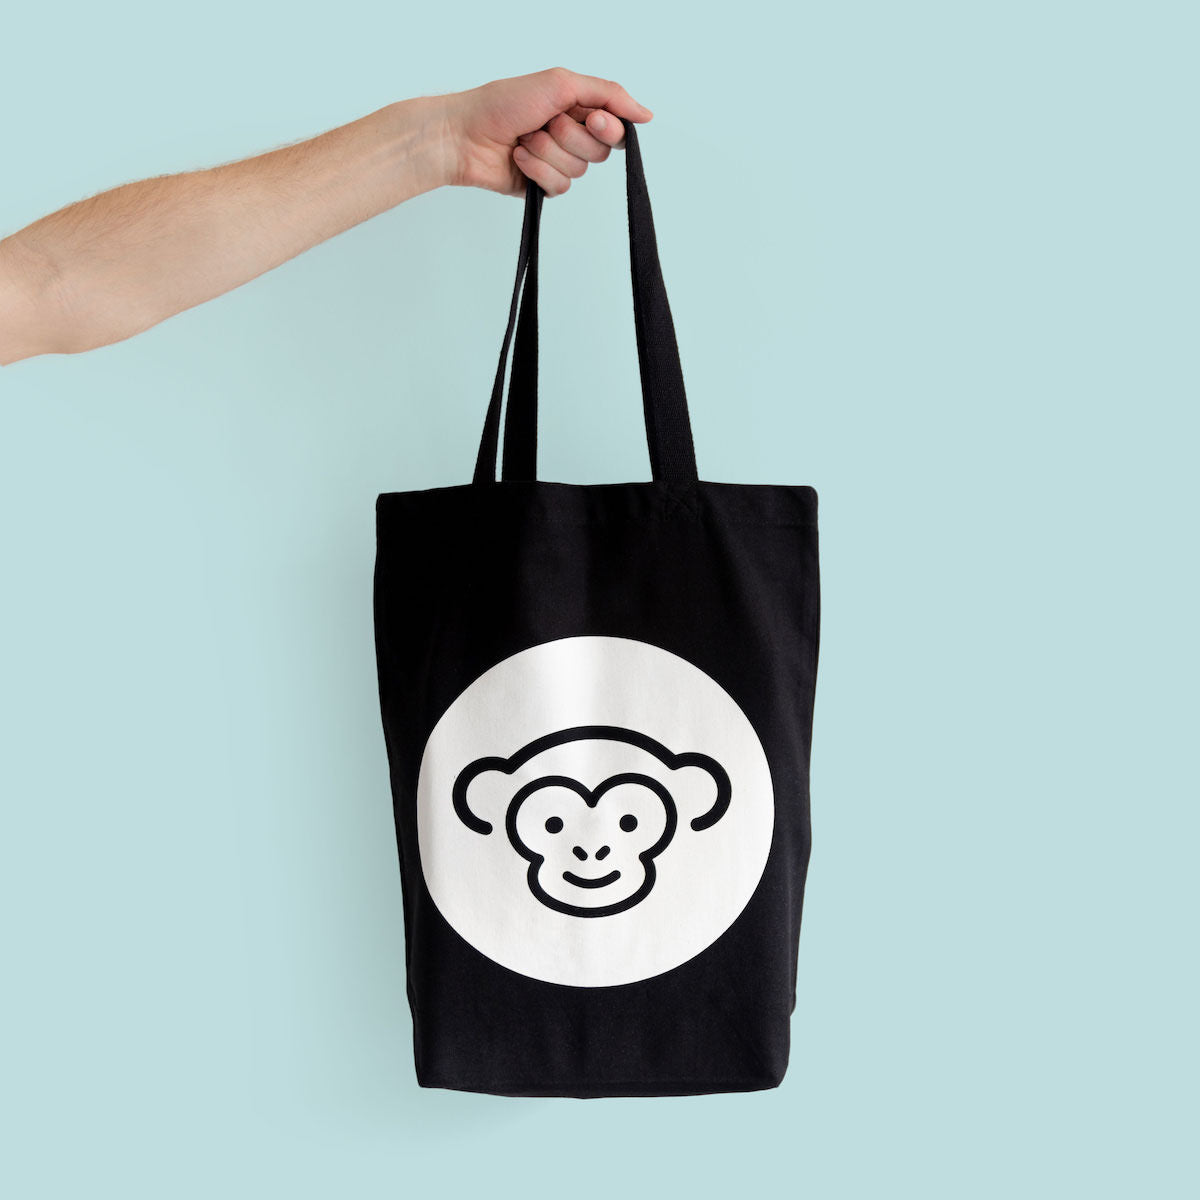 natural cotton tote bag